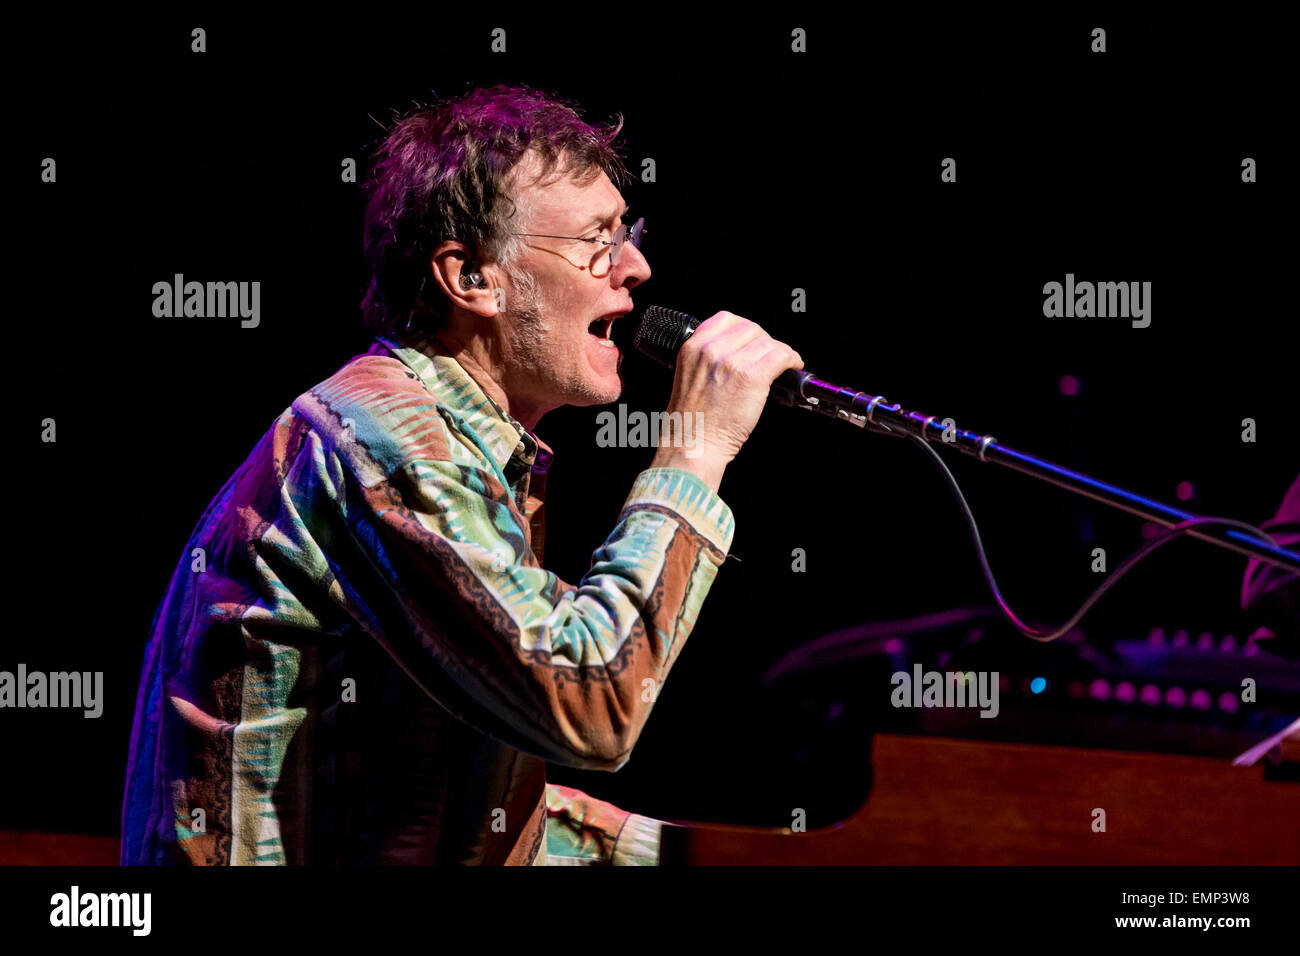 Detroit, Michigan, USA. 21st Apr, 2013. STEVE WINWOOD performing on his North American Tour at The Fillmore in Detroit, - Stock Image